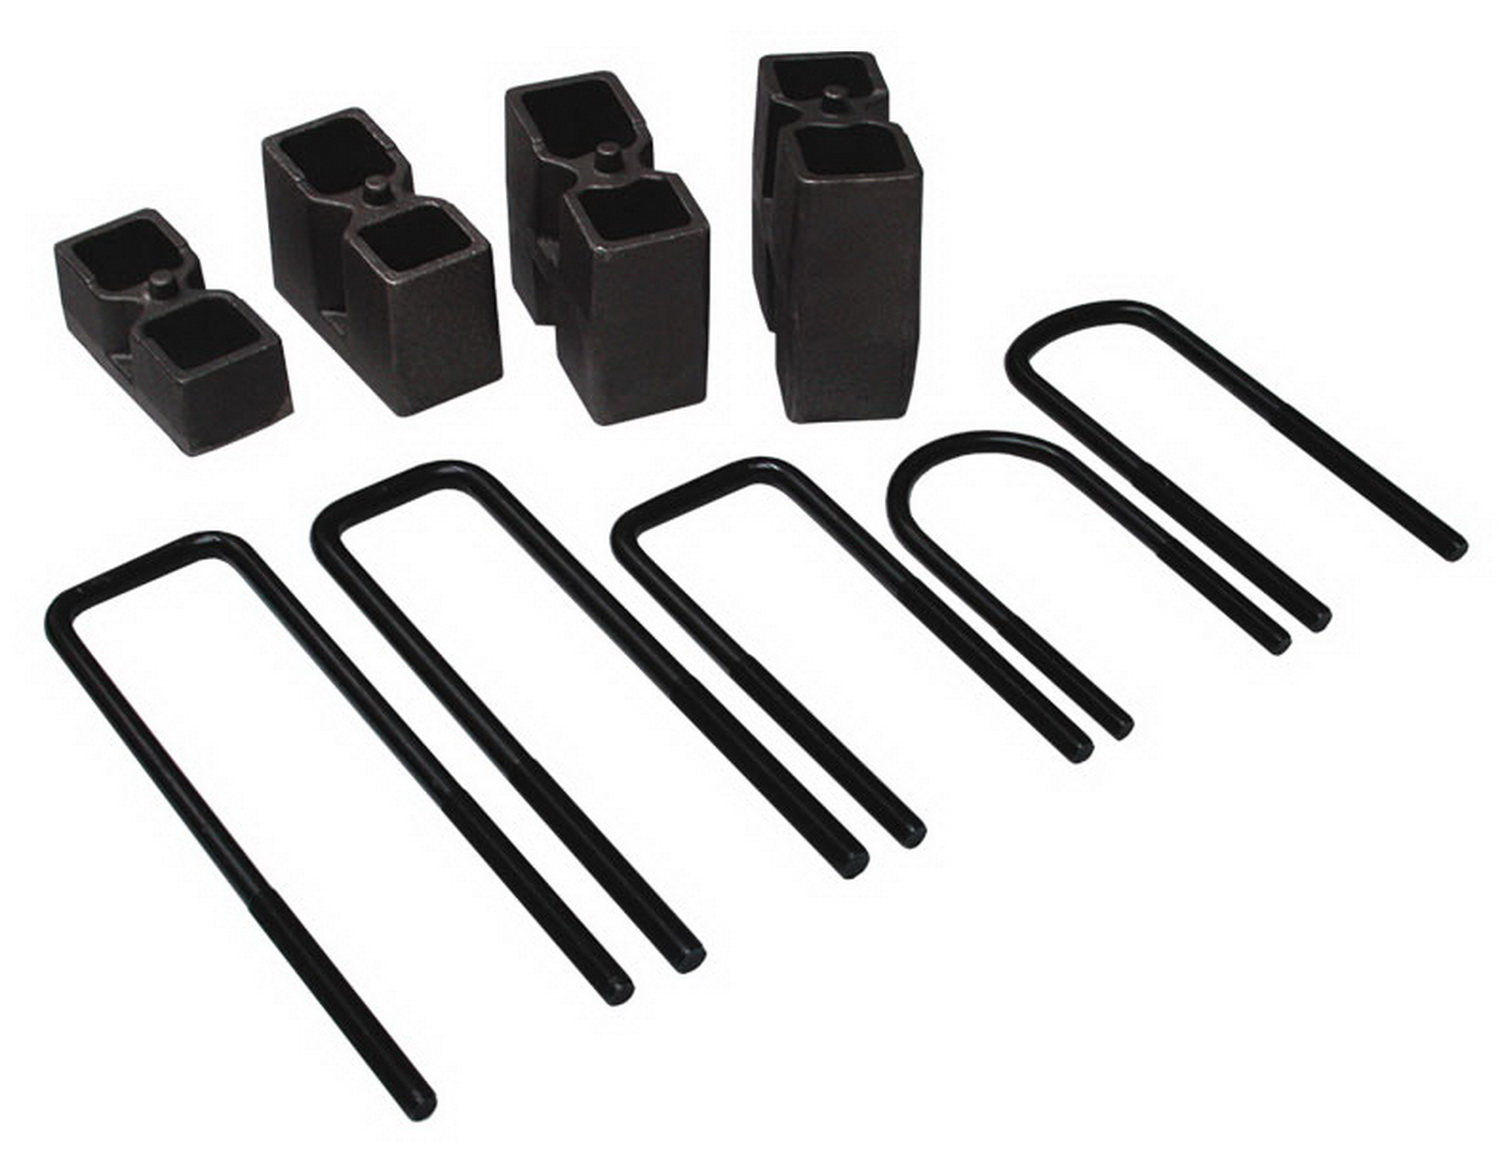 Skyjacker BUK3592 - Skyjacker Blocks & U-Bolt Kits